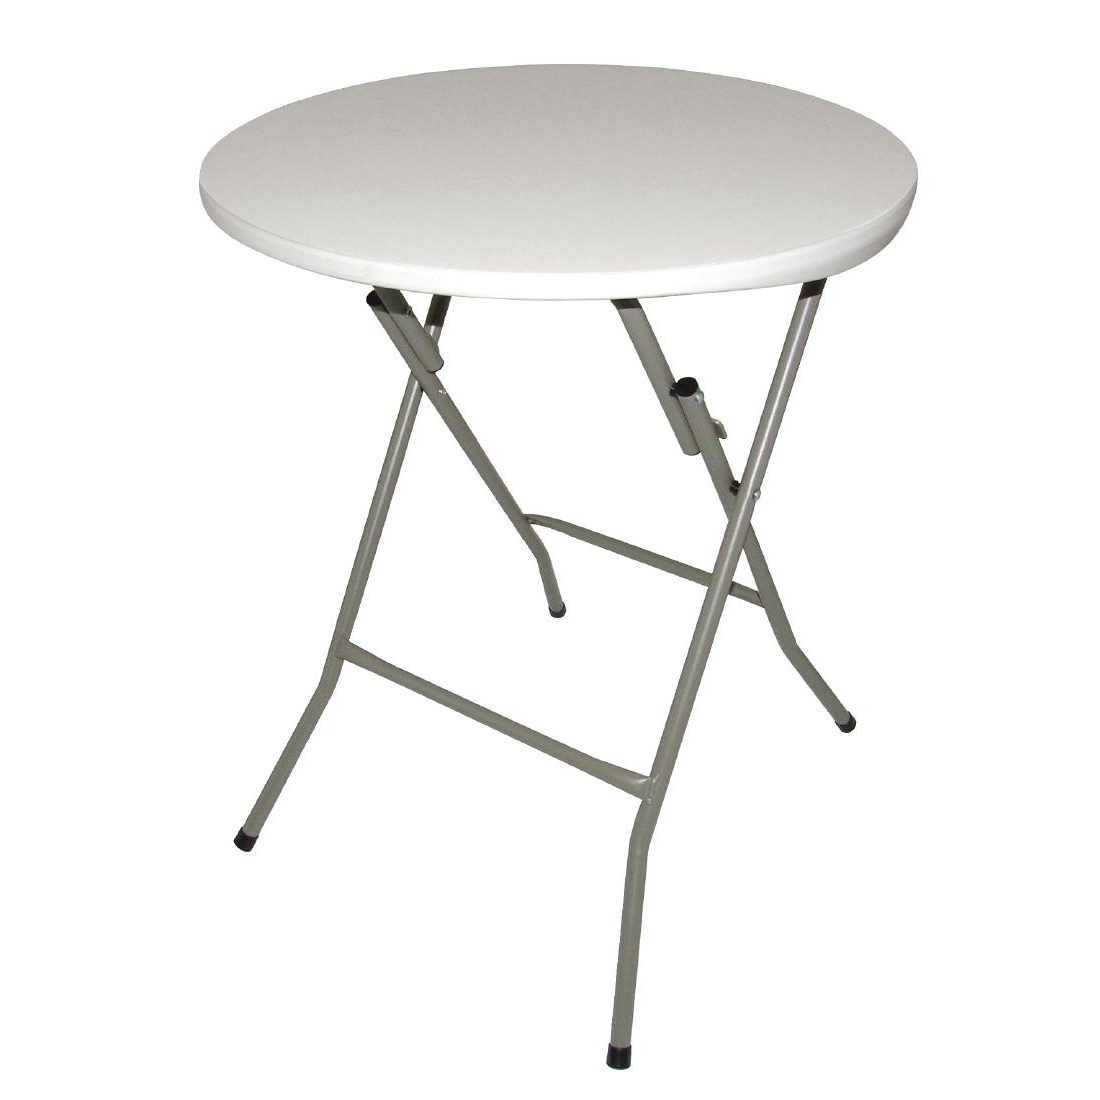 Bolero Foldaway Round Table 600mm